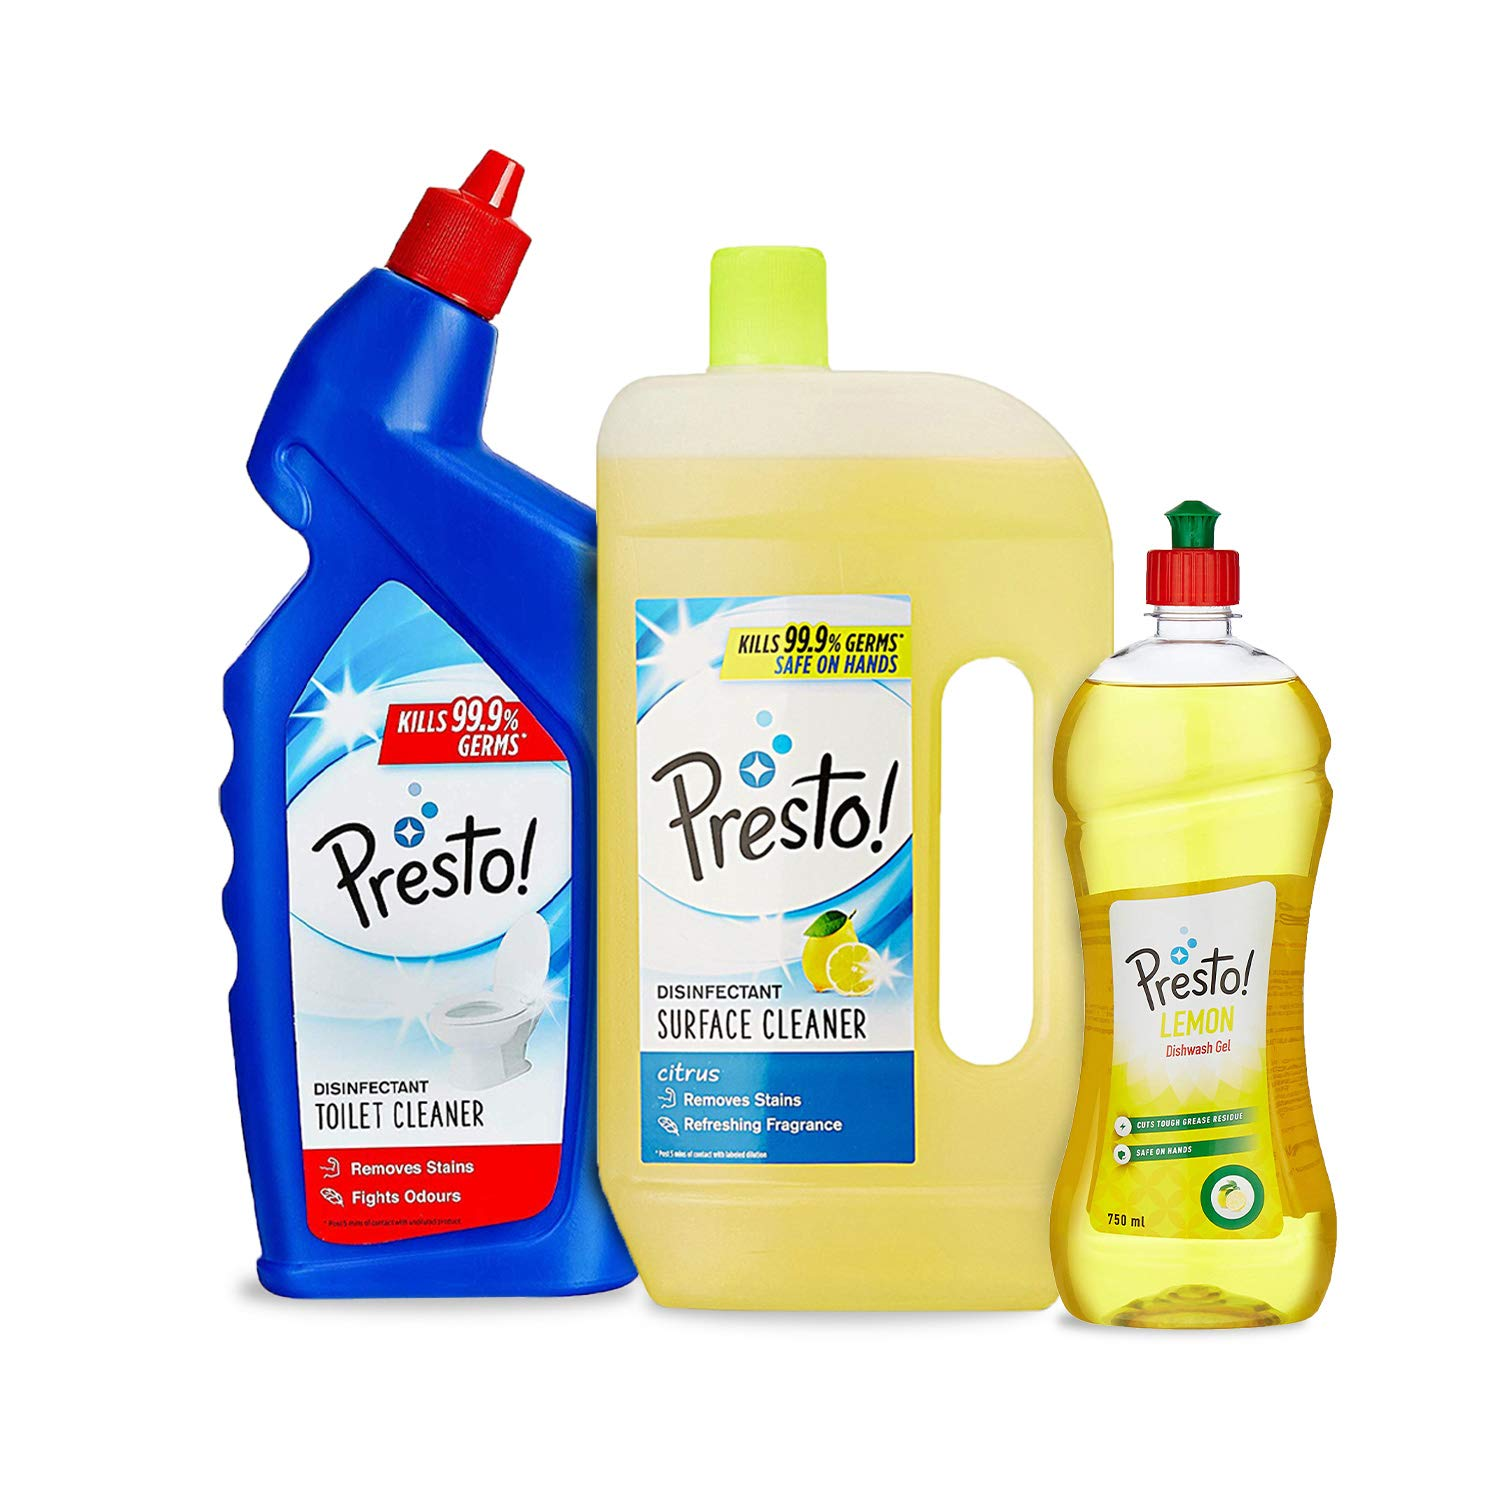 Amazon price history for Amazon Brand - Presto! Combo (Toilet Cleaner 1 L + Surface Cleaner 975 ml + Dishwash Gel 750 ml)